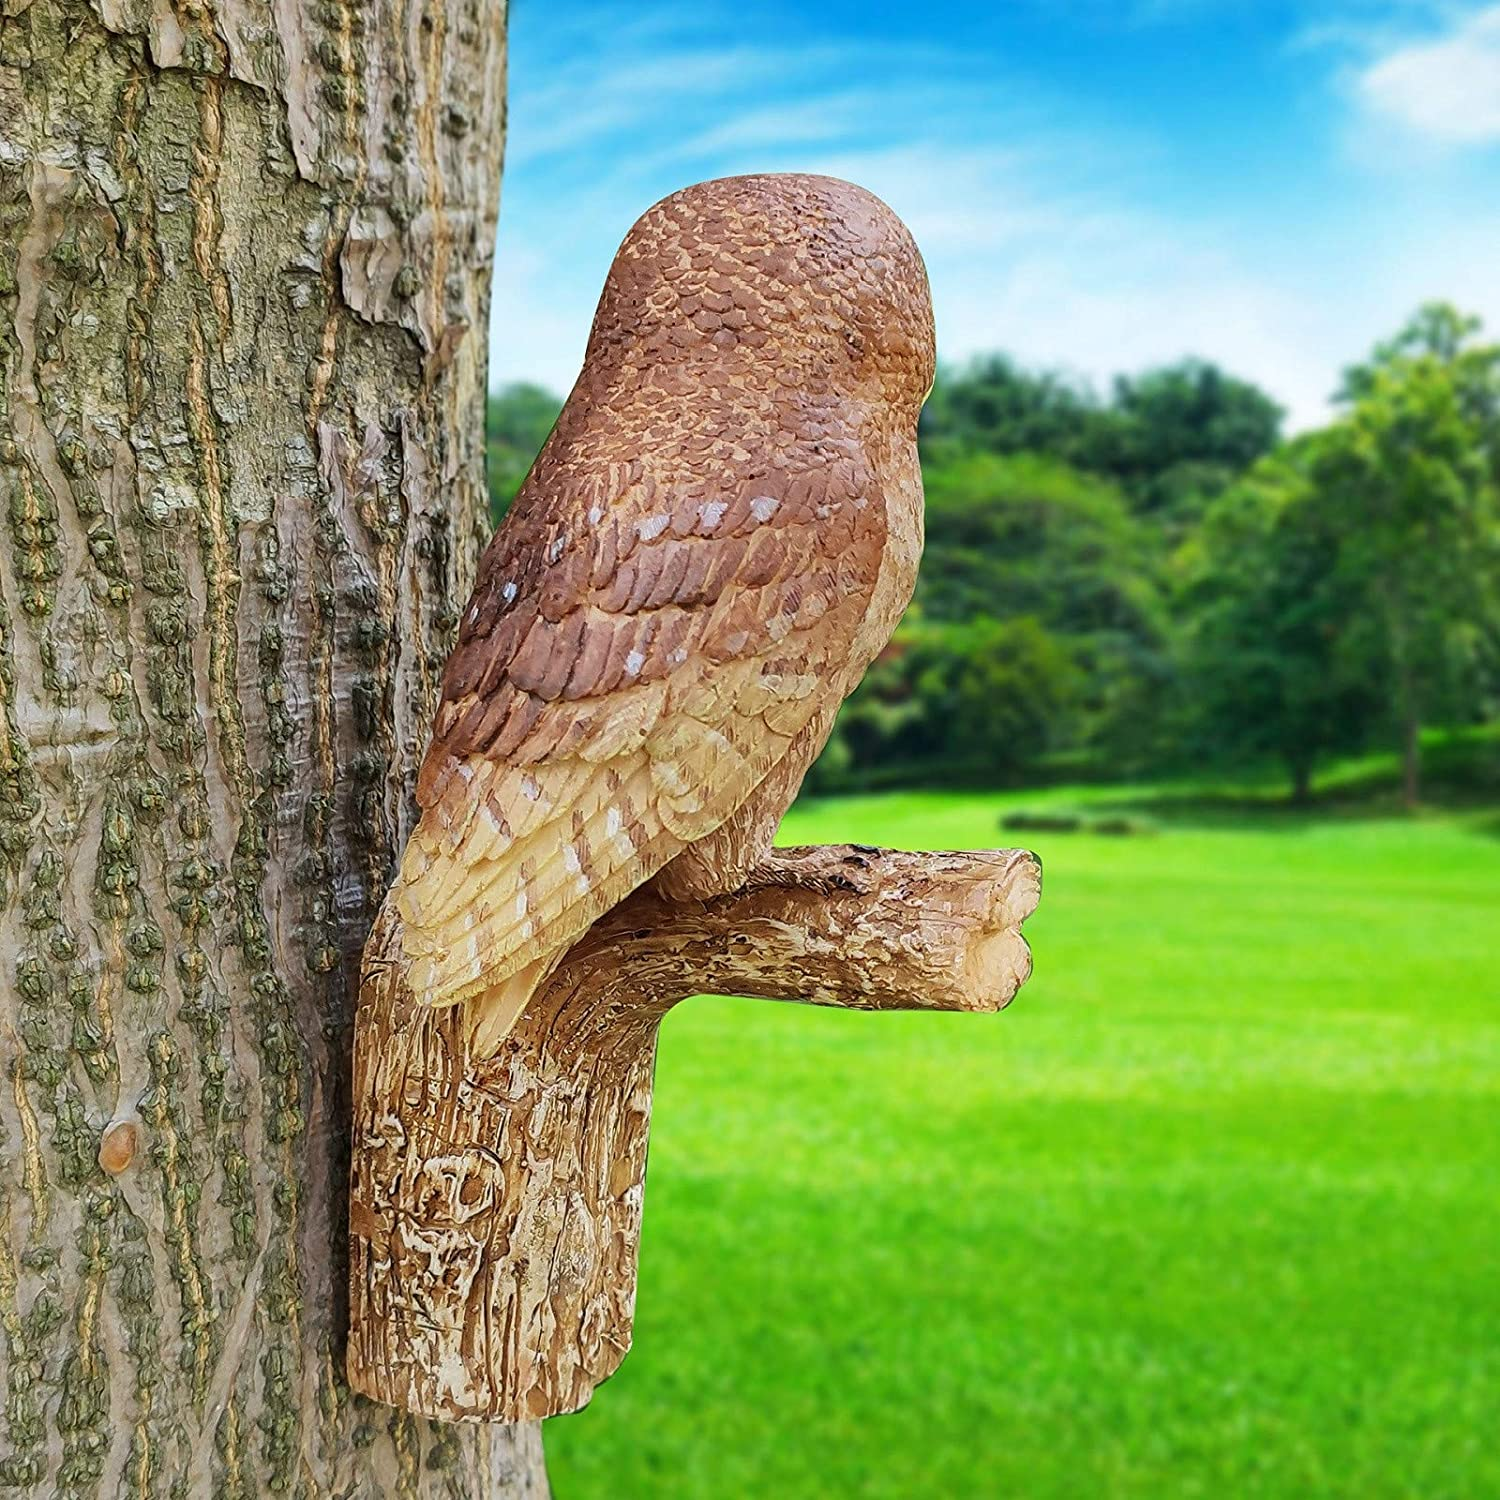 Owl-shaped resin statue simulation sculpture tree hanging, terrace garden lawn decoration, indoor and outdoor autumn garden art garden decoration